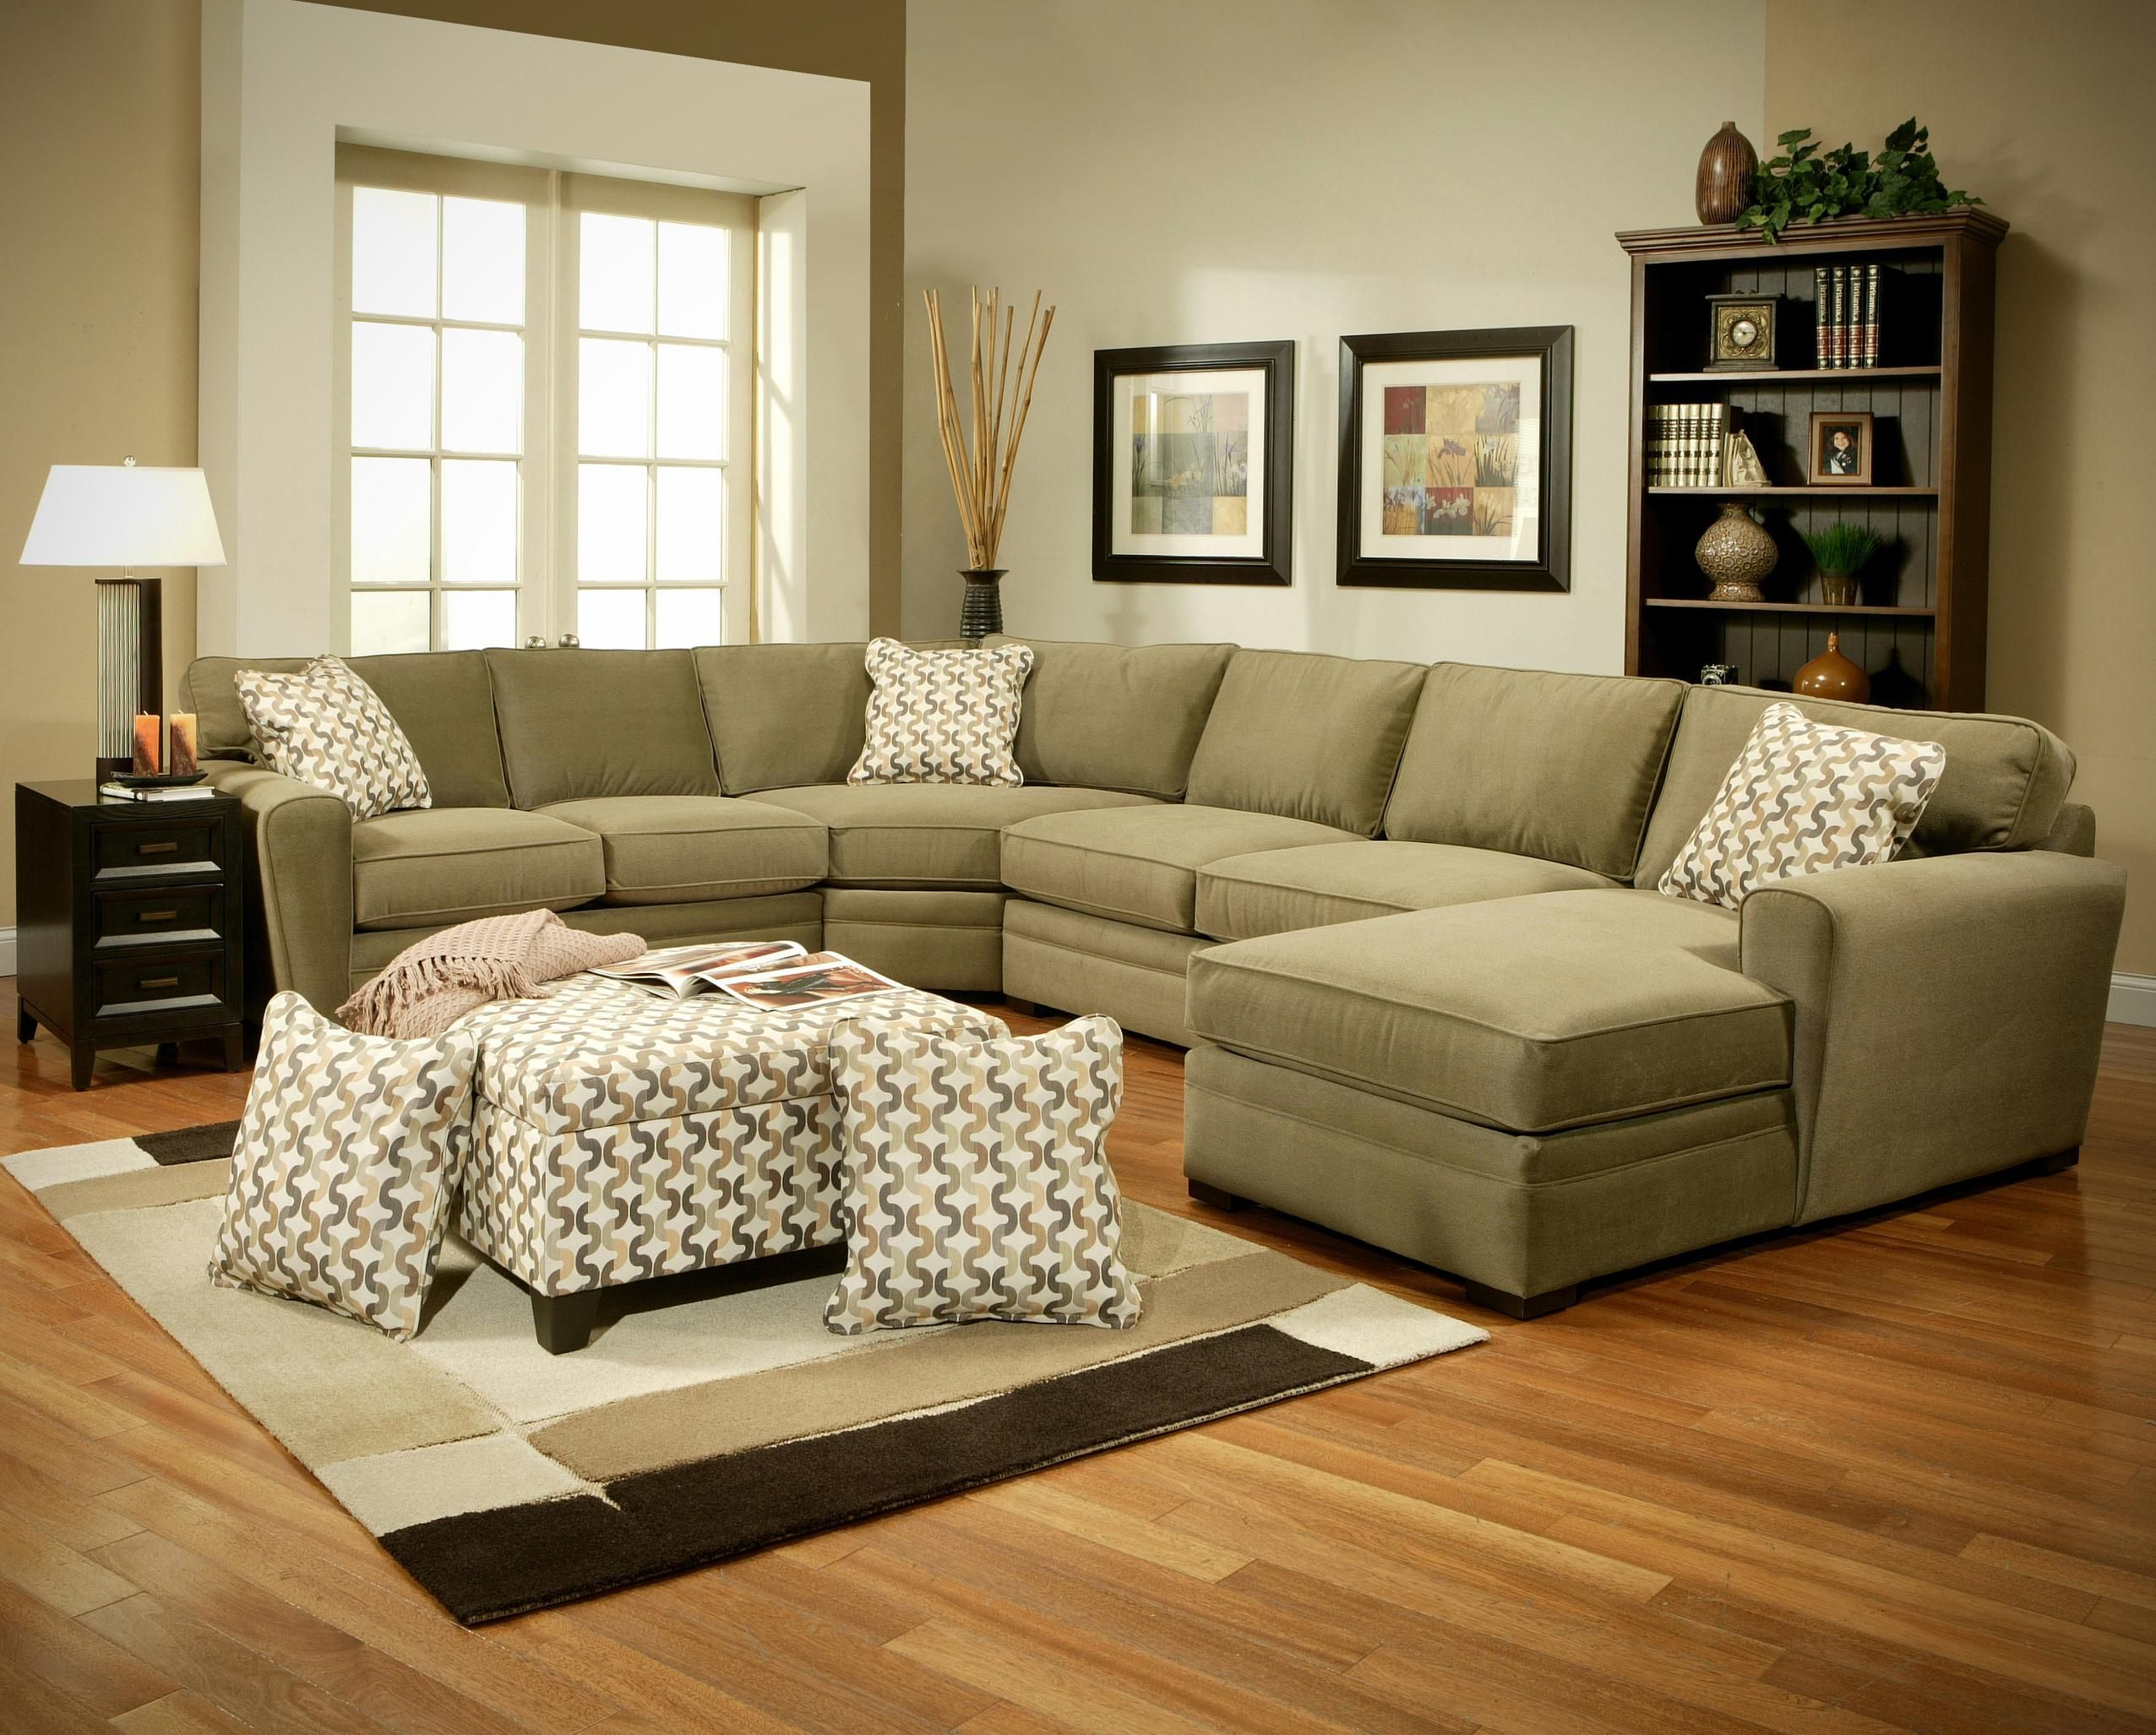 dayton ohio opens new ideas tremendous full image discount store american marvelous warehouse americanight size locations newest furniture freight of charlotte beautiful